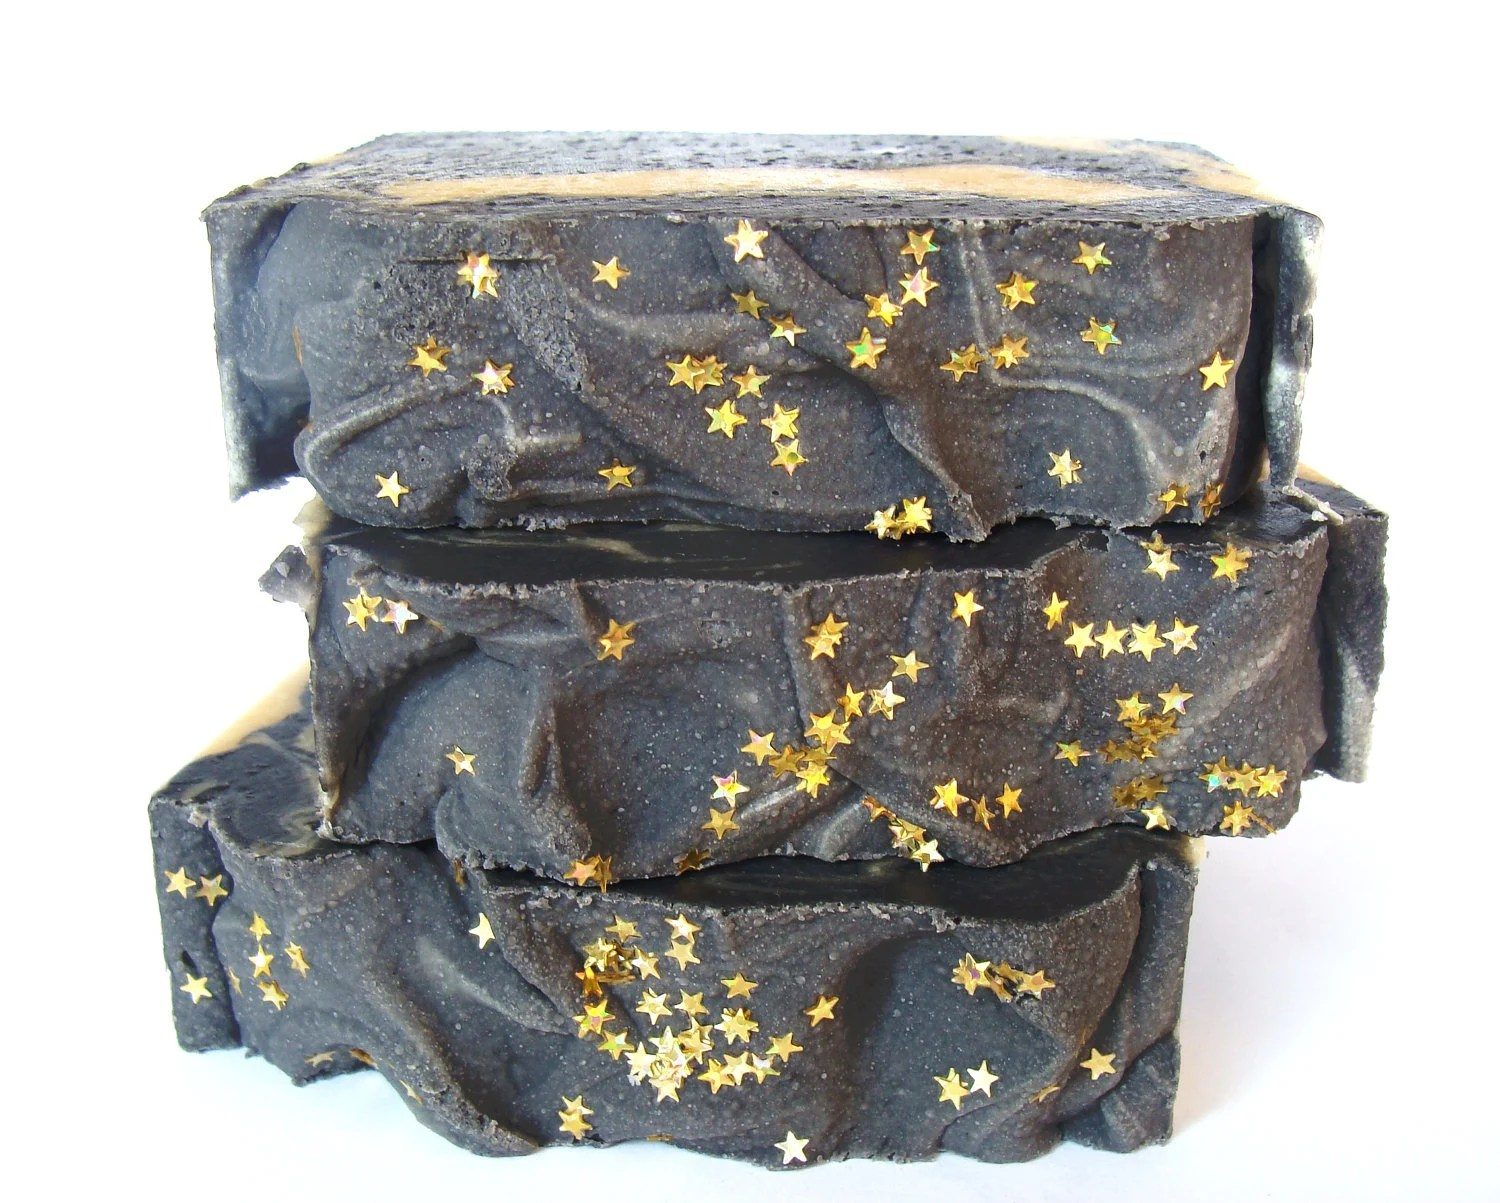 Reach For the Stars Soap Activated Charcoal Eucalyptus Essential Oil Soap Black Gold New Year - ABreathOfFrenchAir